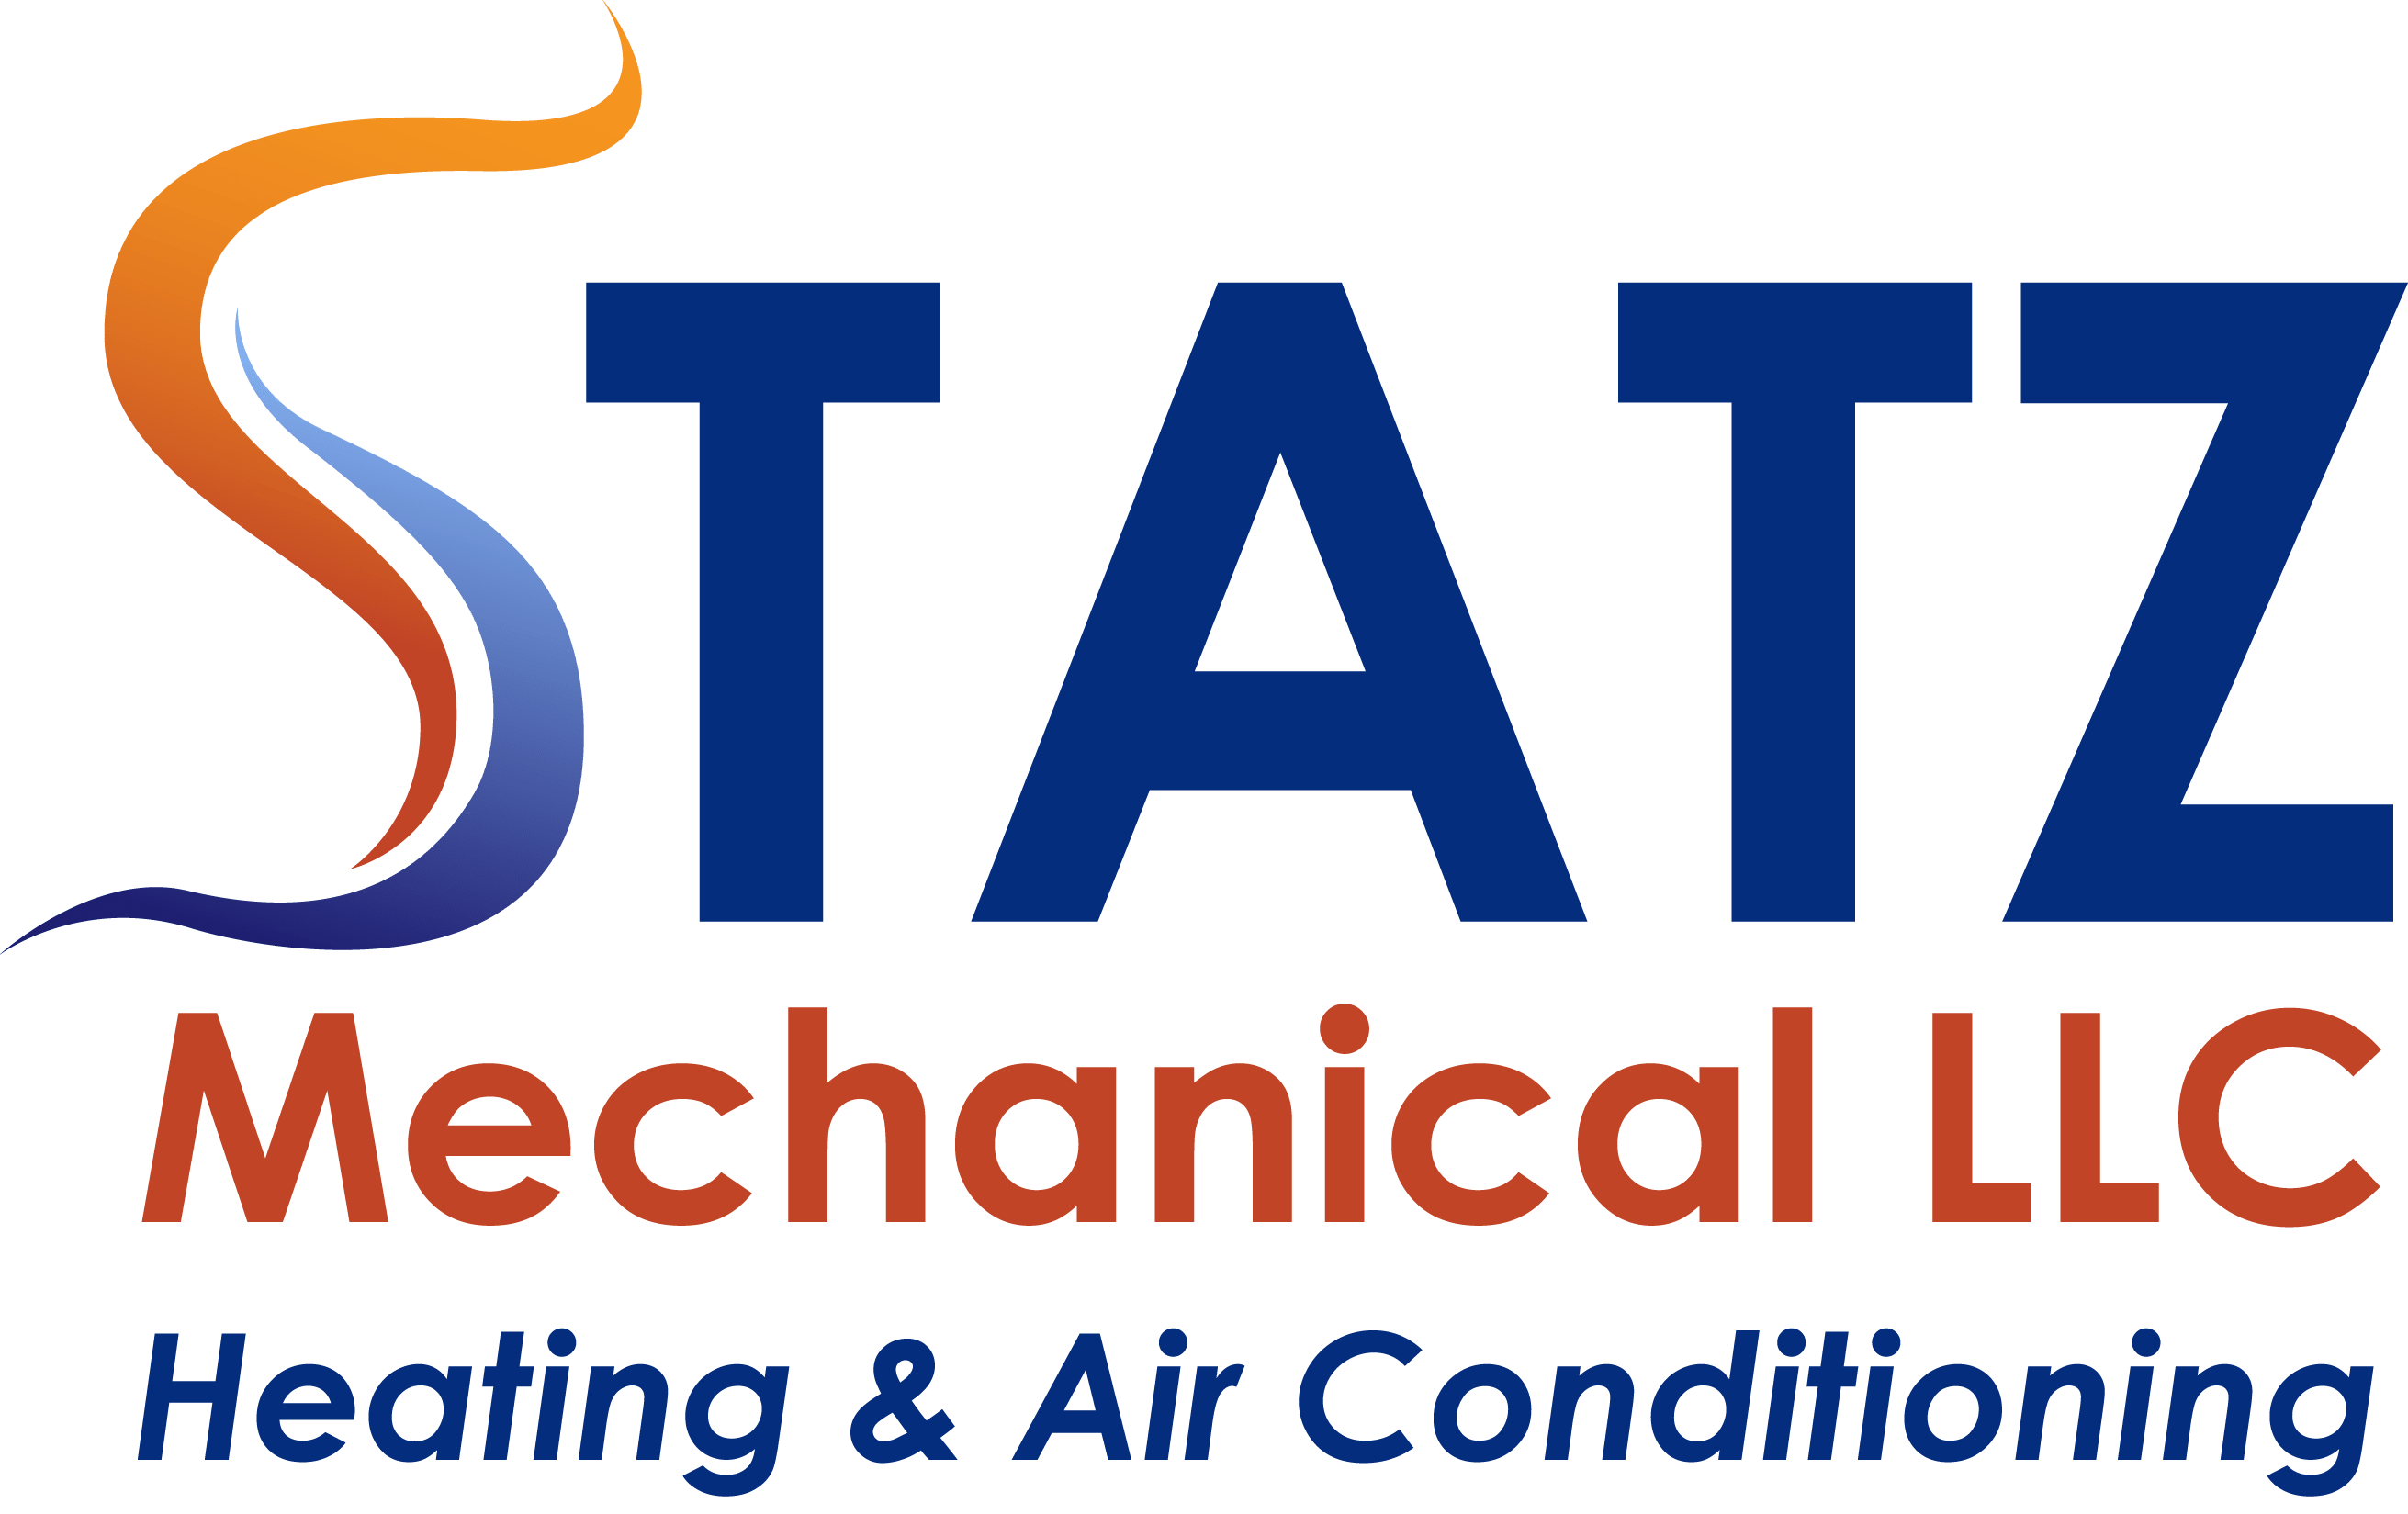 Get your Amana AC units service done in Baraboo WI by Statz Mechanical LLC